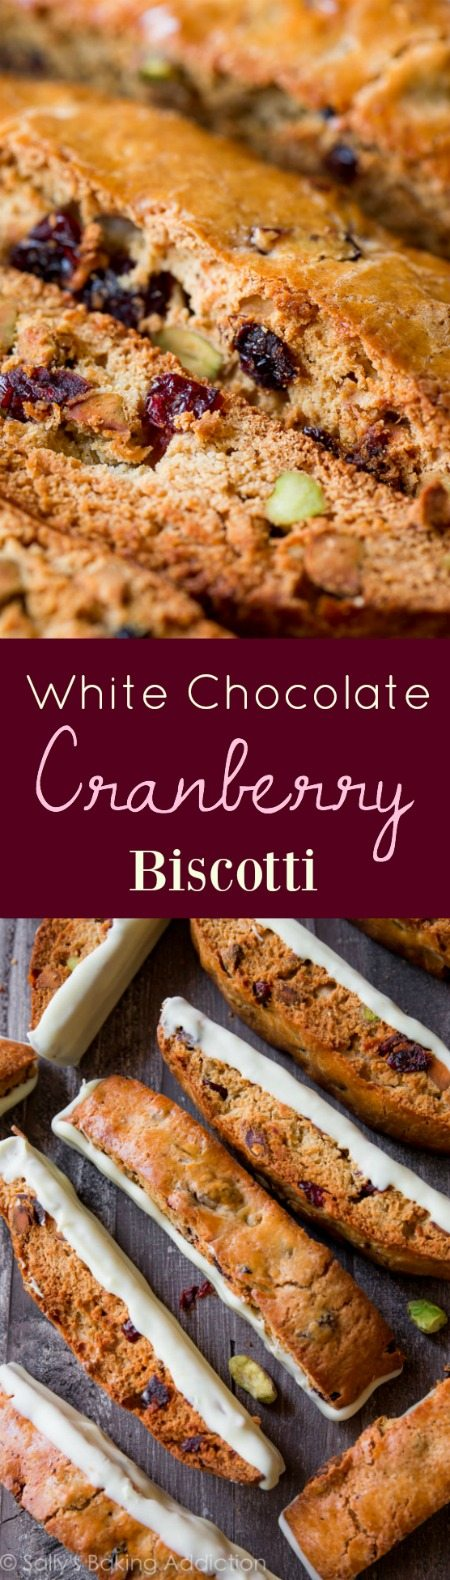 Deliciously dunkable, crunchy, and packed with dried cranberries, pistachios, and plenty of melted white chocolate! sallysbakingaddiction.com